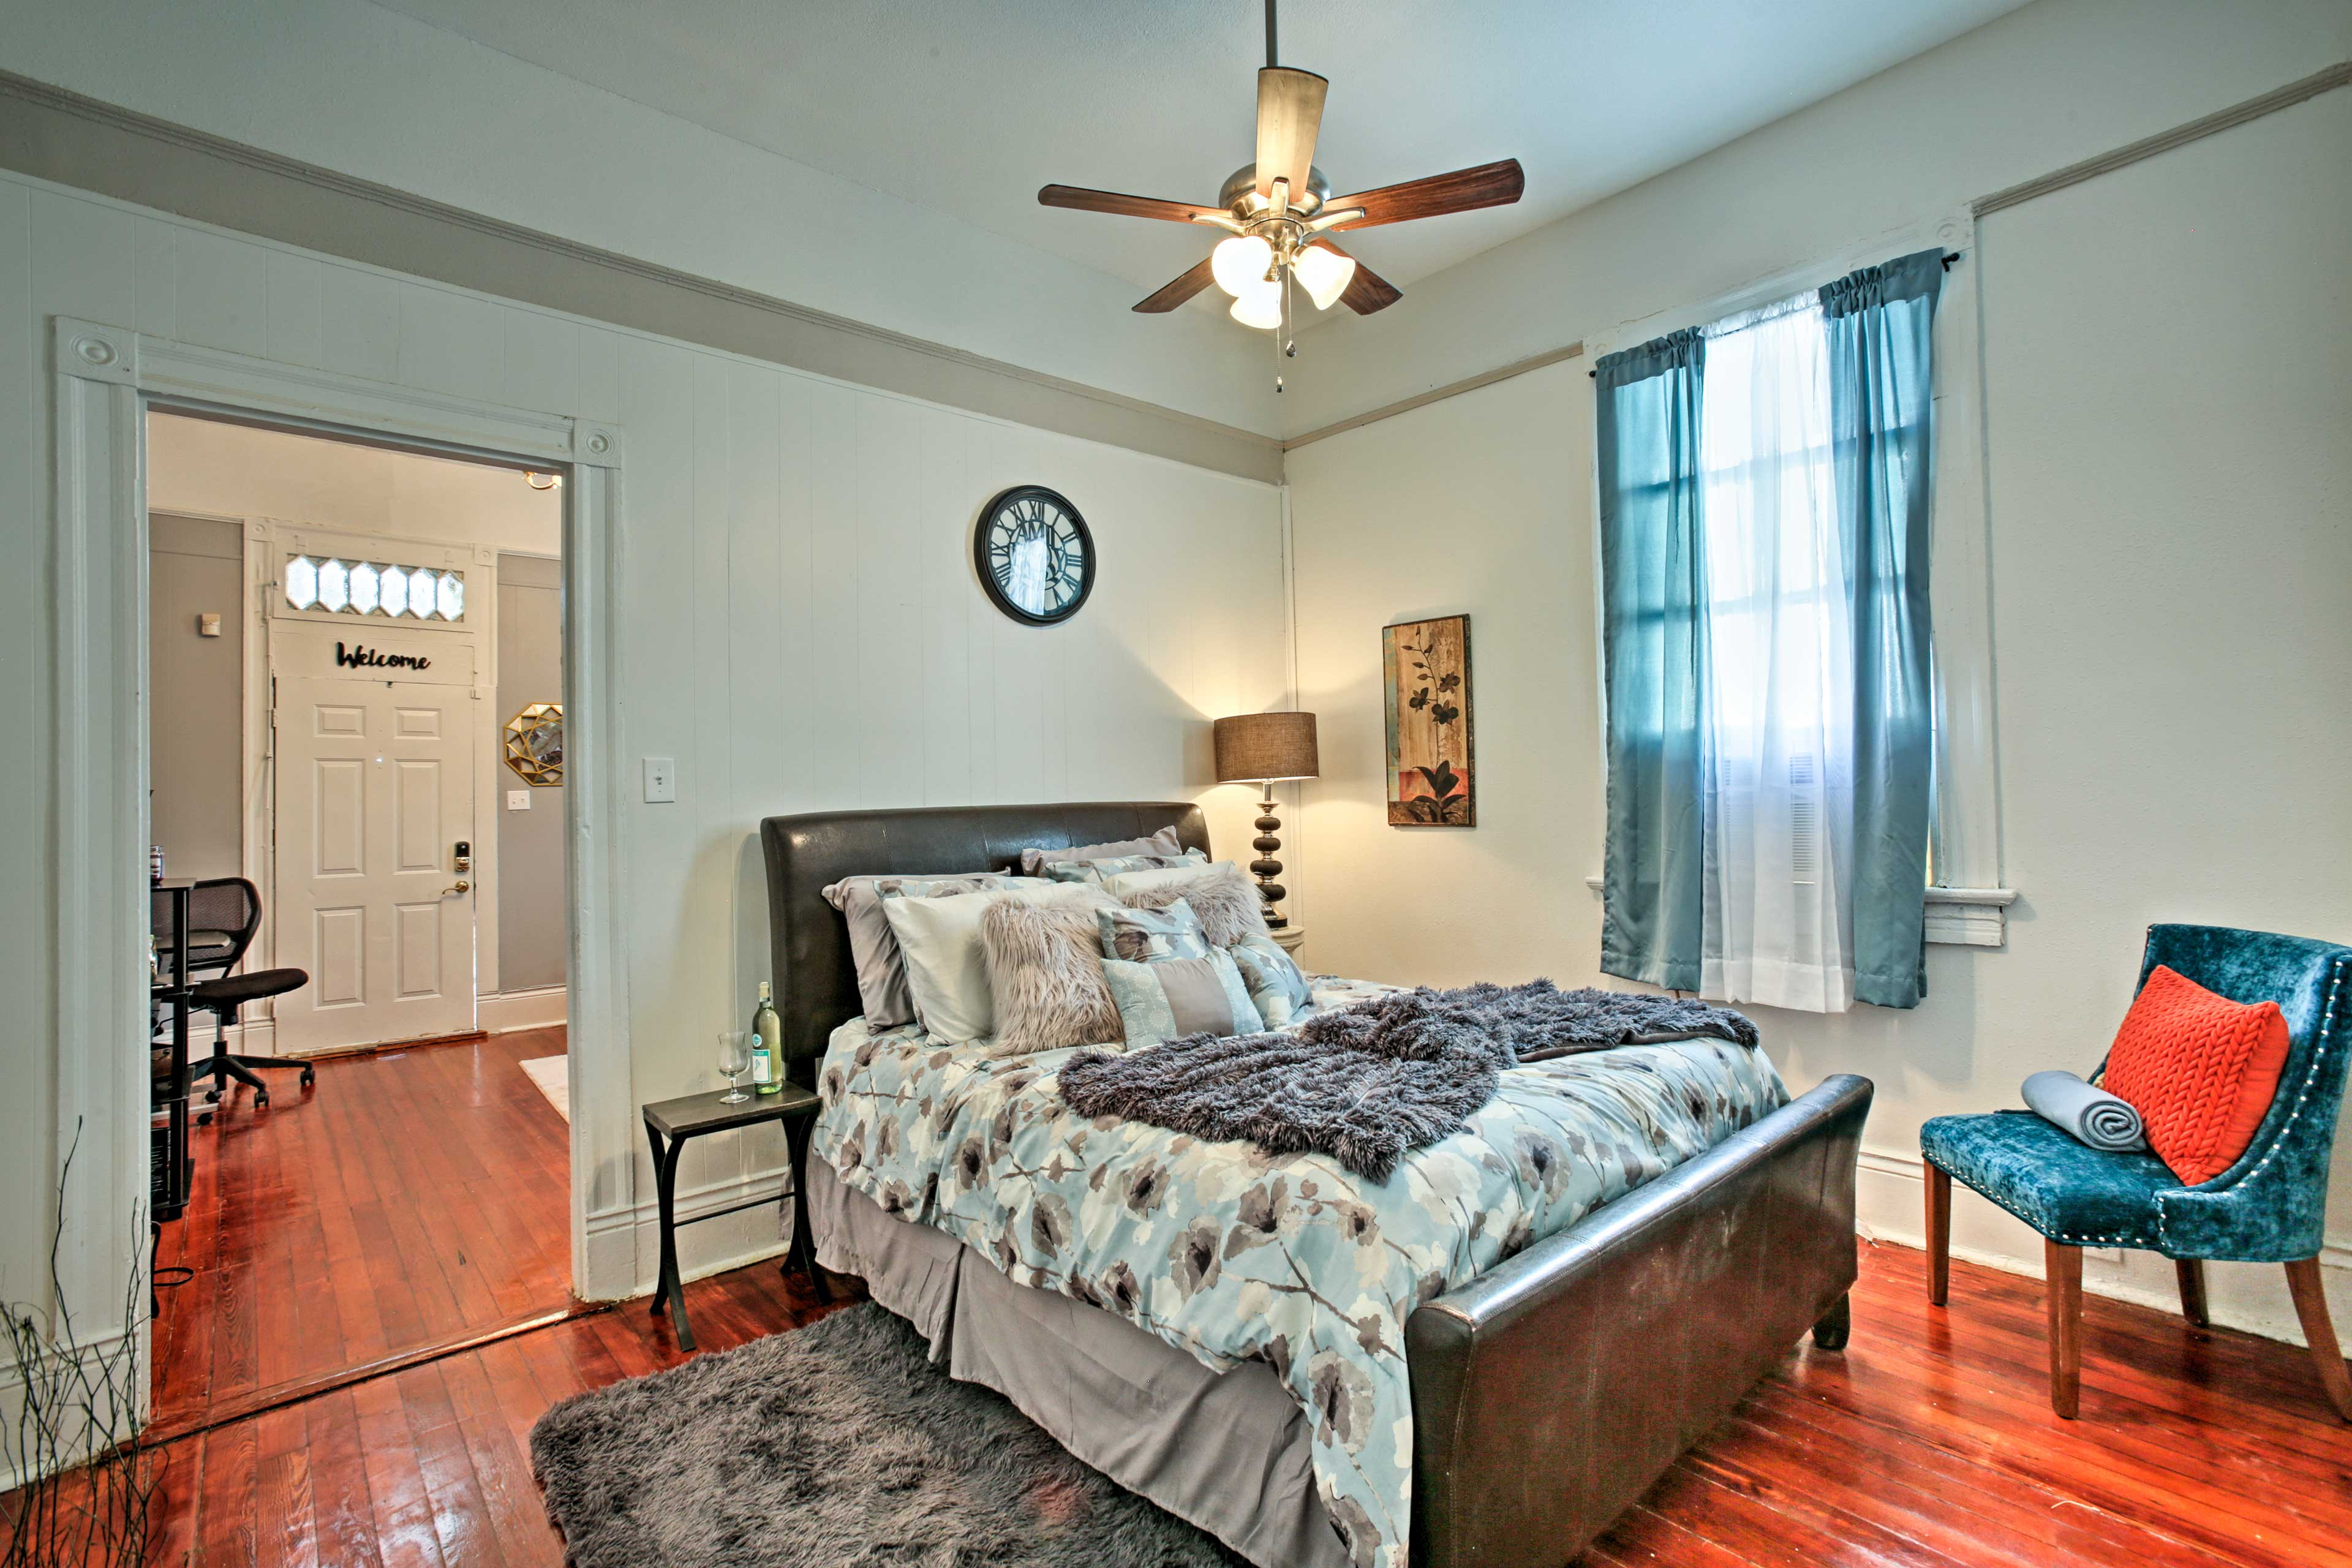 Step through the doorway into the first bedroom.